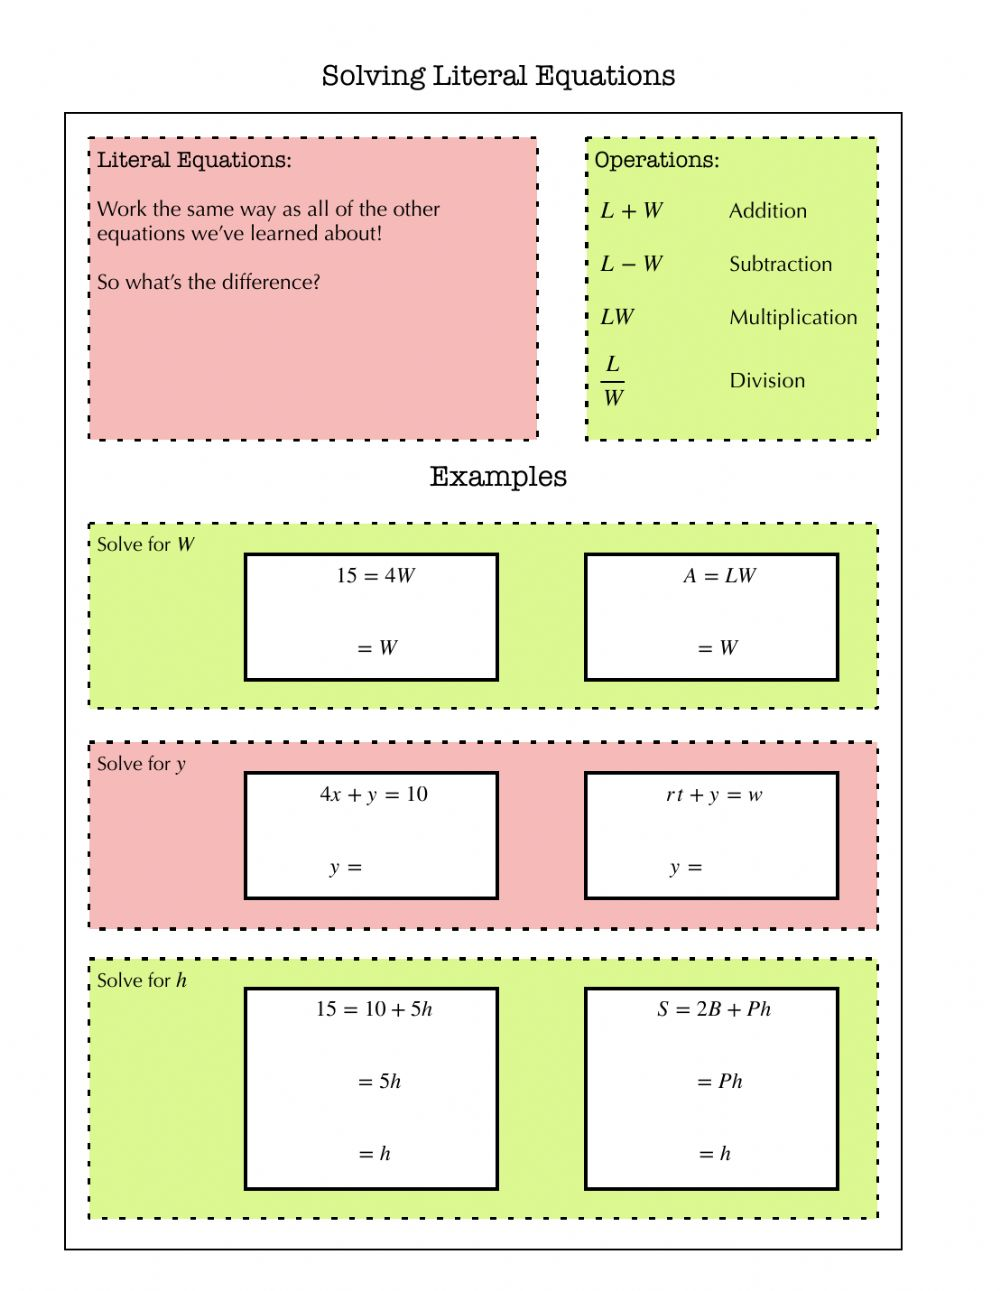 Solving Literal Equations Notes interactive worksheet For Literal Equations Worksheet Answer Key